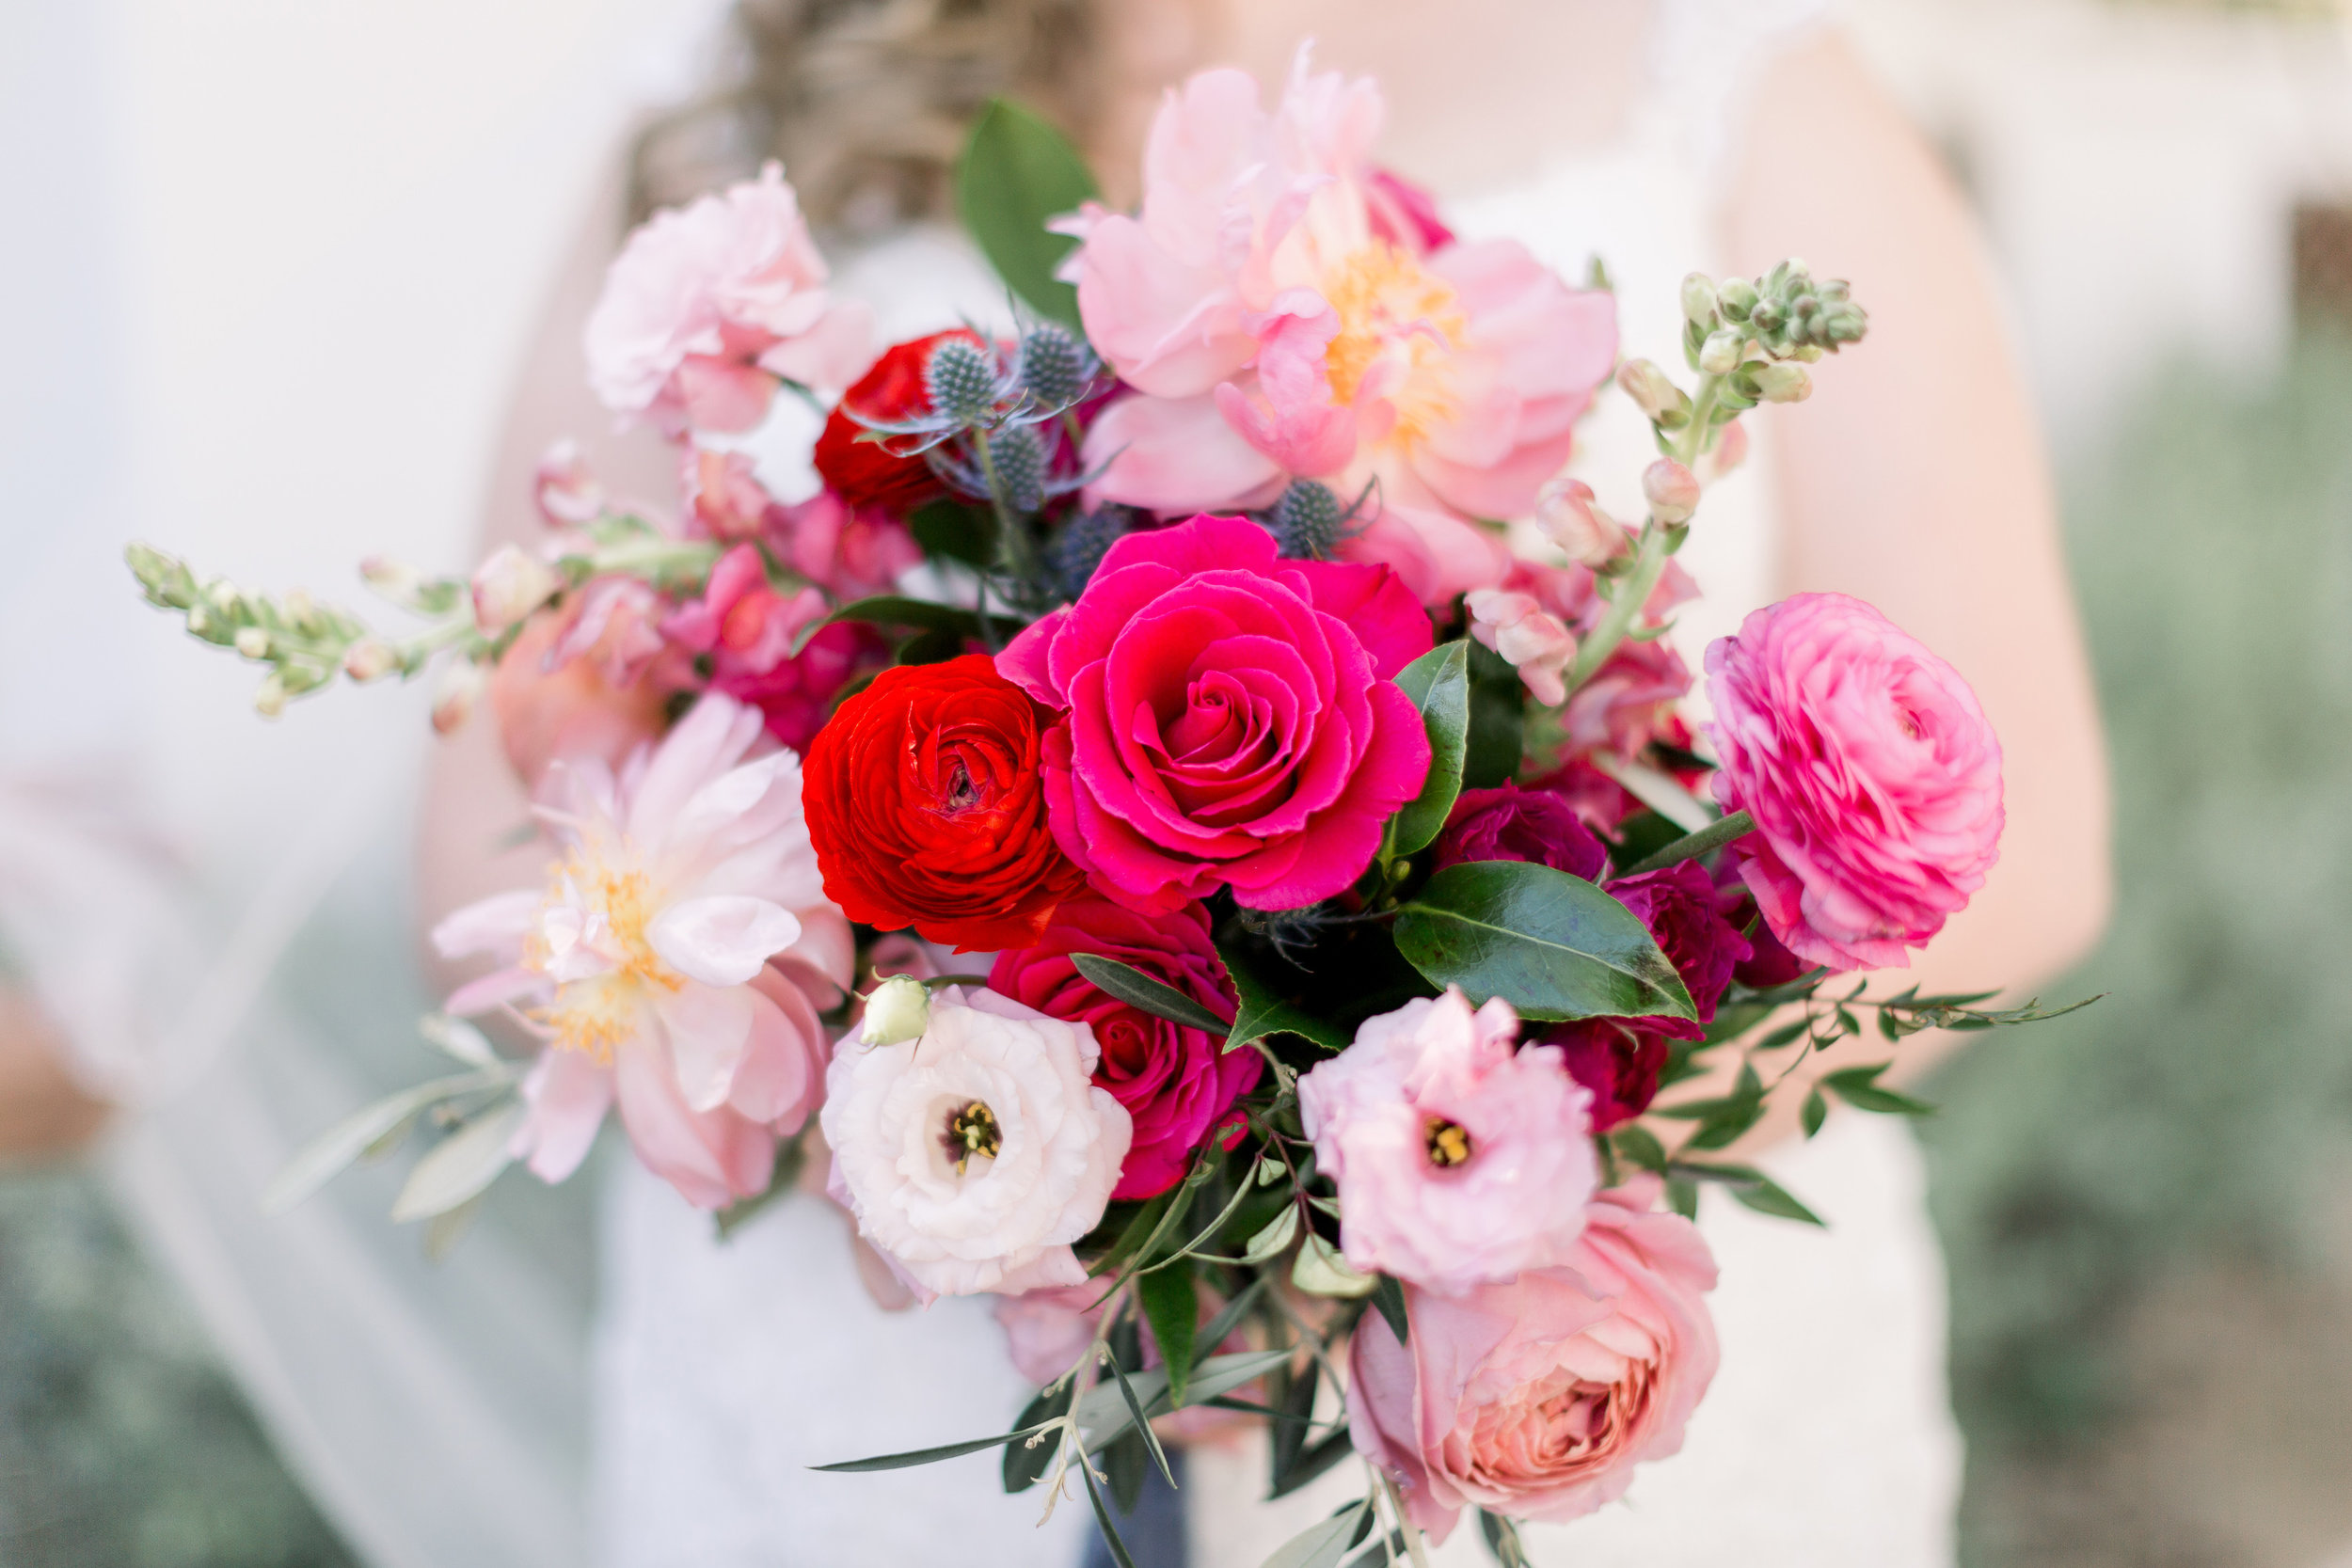 Roxanne and Brandon's El Chorro Wedding - Arizona florist Phoenix scottsdale Mesa chandler Sedona Prescott - Hot pink and red bridal bouquet with garden roses, peonies, roses, and snapdragon